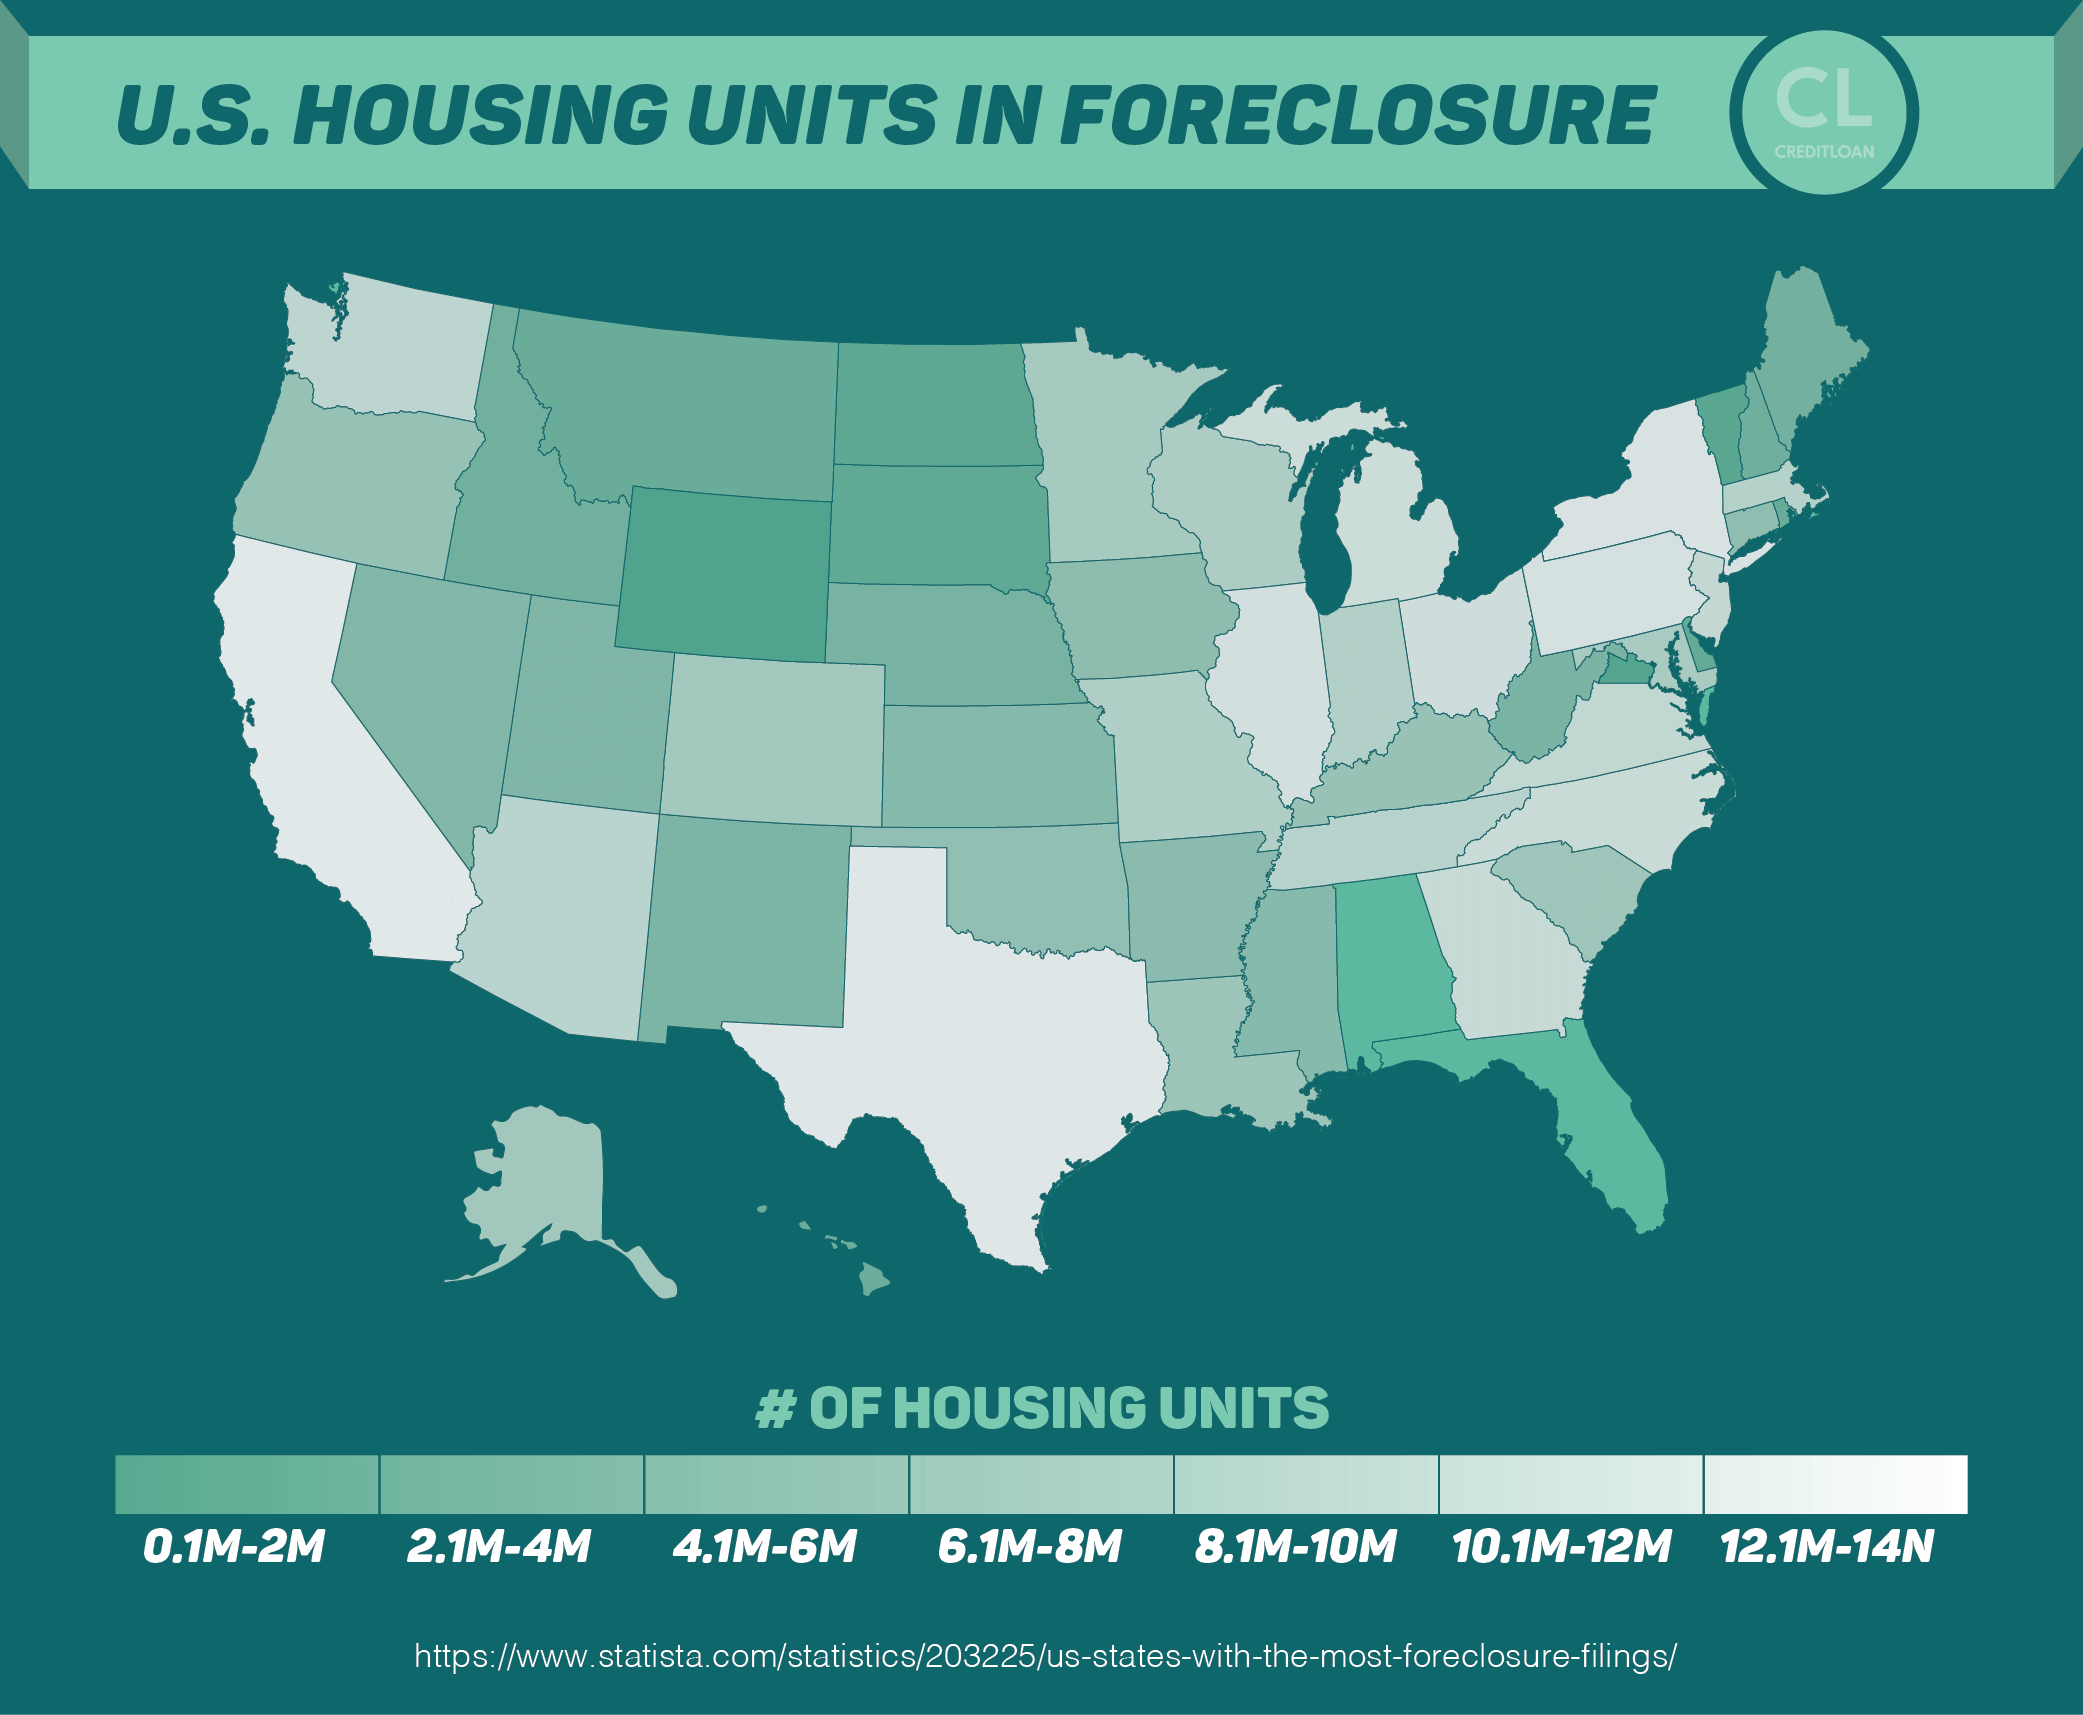 U.S. Housing Units In Foreclosure